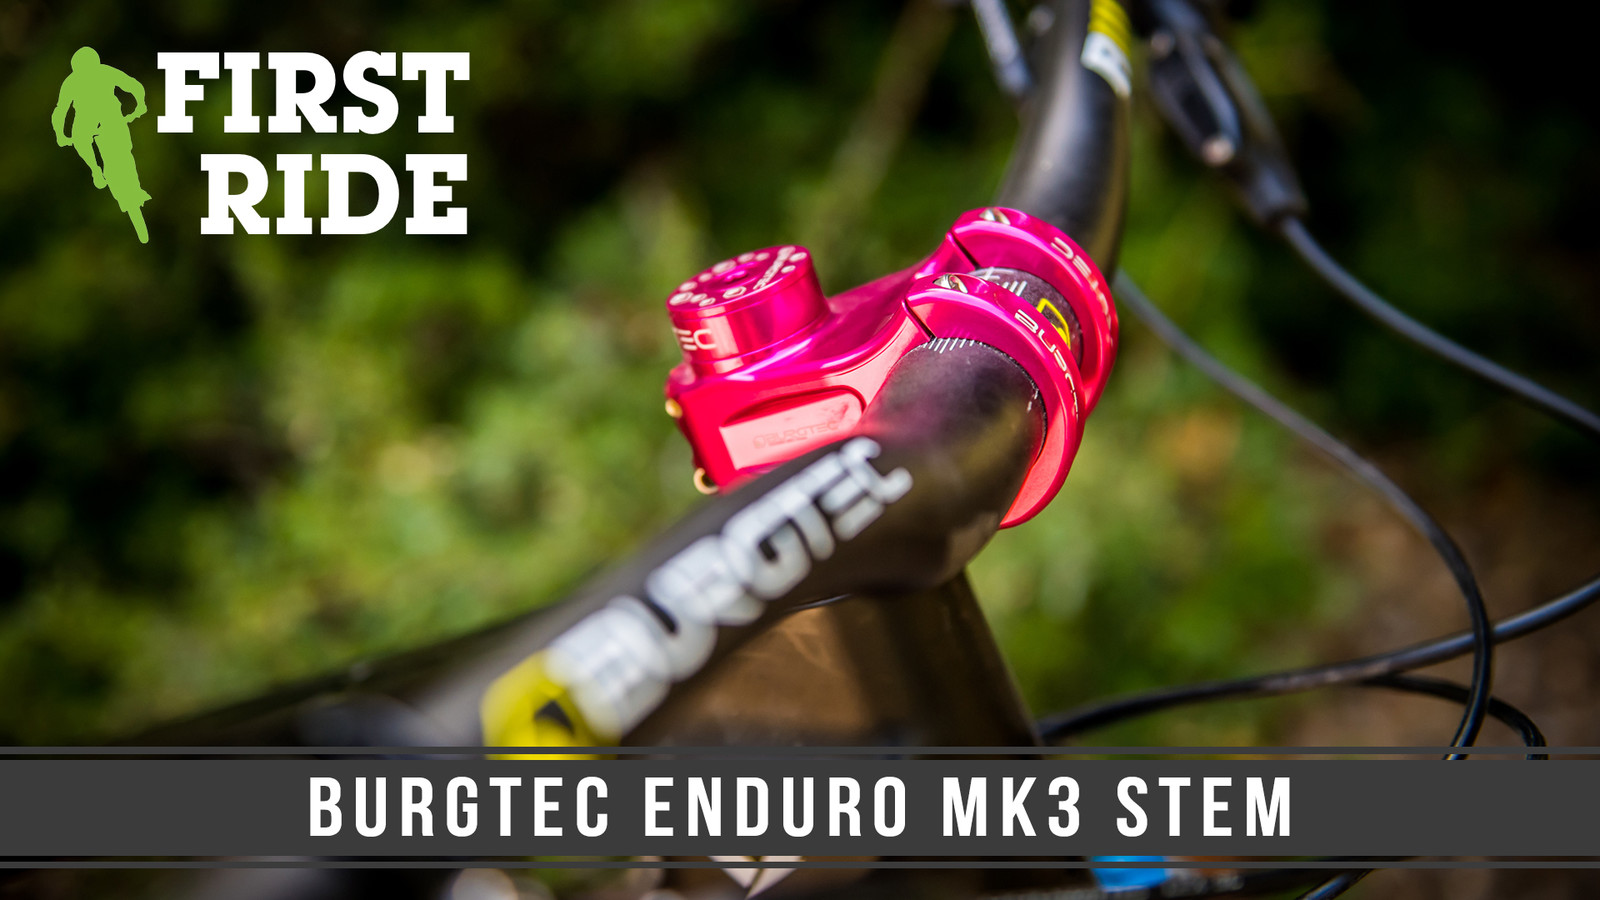 First Ride: Burgtec Enduro MK3 Stem